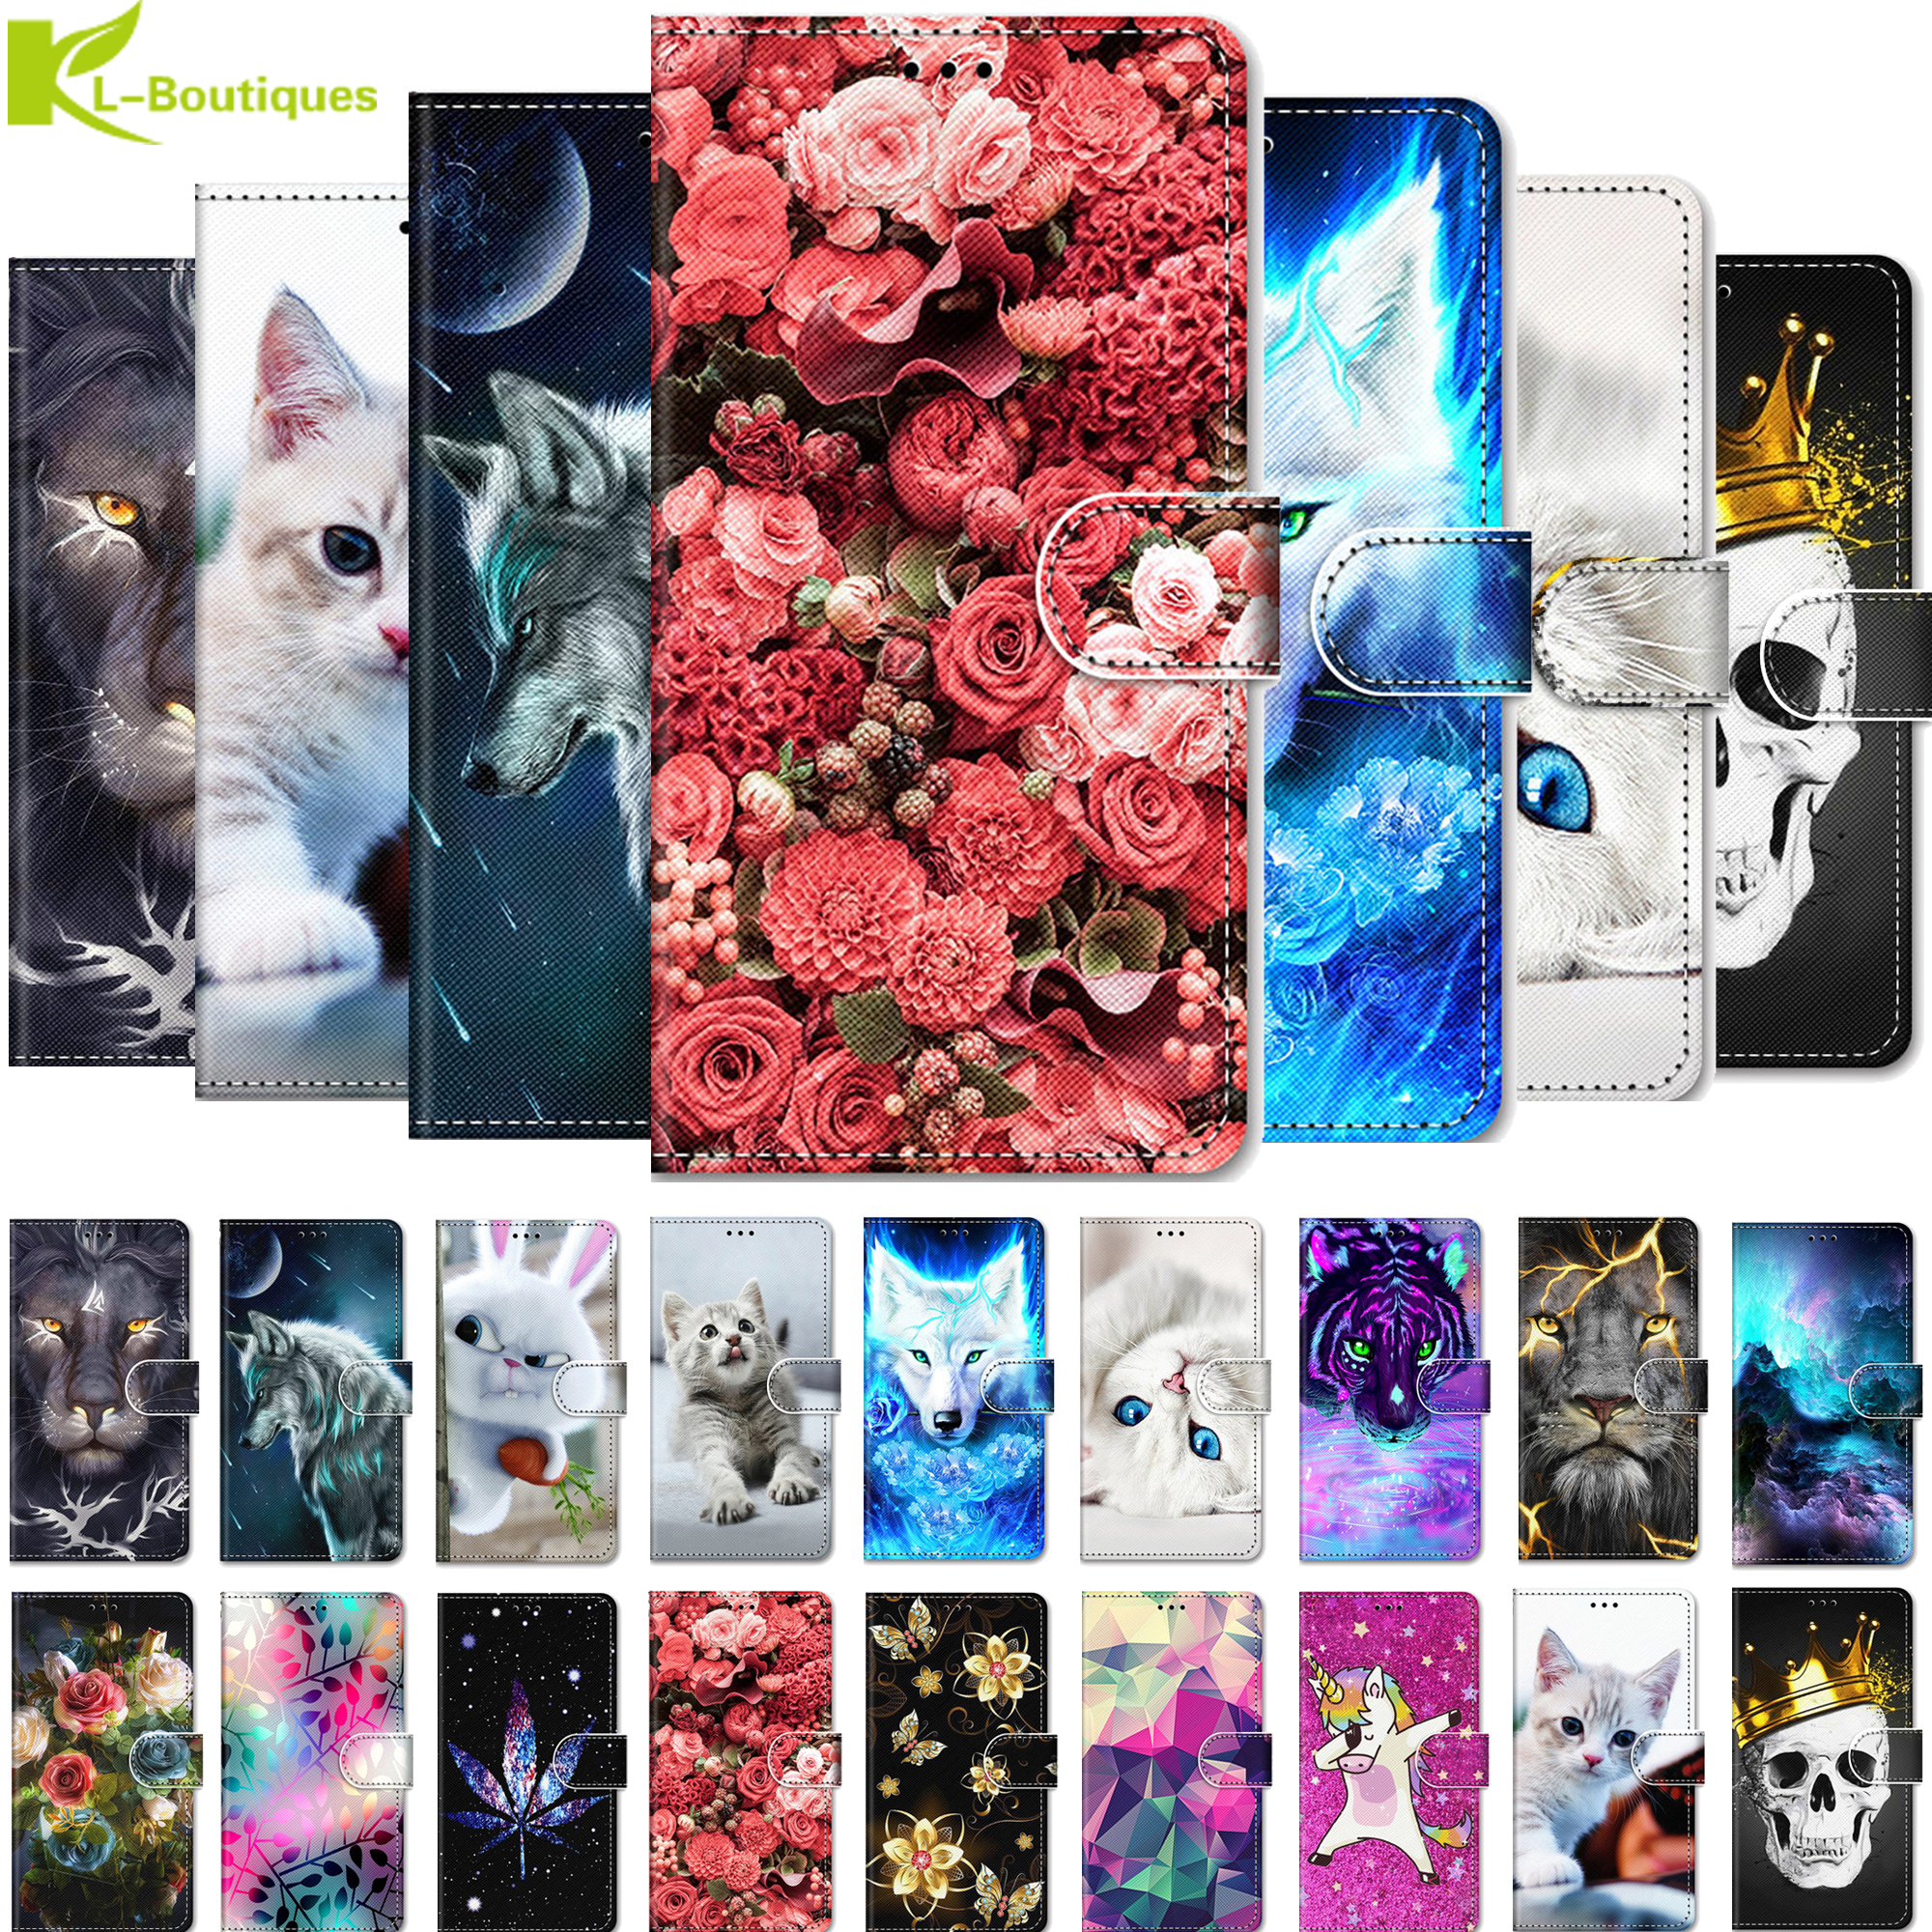 P Smart Plus 2019 POT-LX1T Case Etui On For Huawei Psmart Z Plus 2019 Honor 10i 10 20Lite Capa Animal Painted Flip Leather Cover